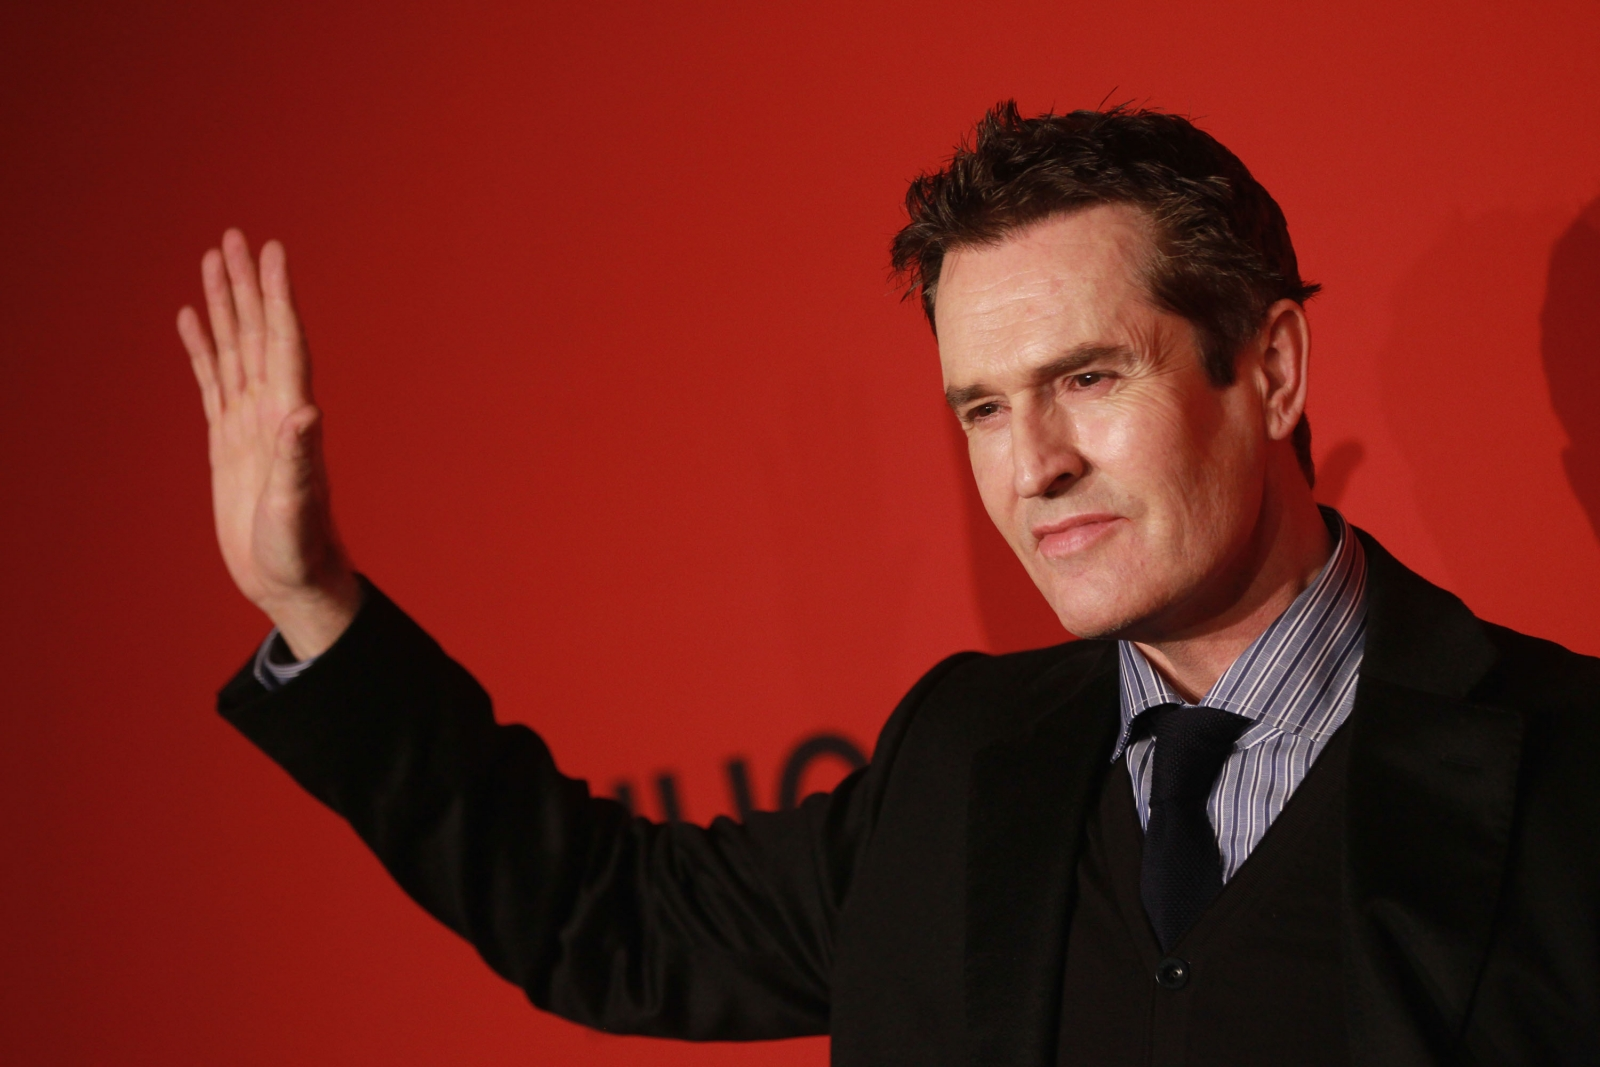 Rupert Everett at Hugo Boss show